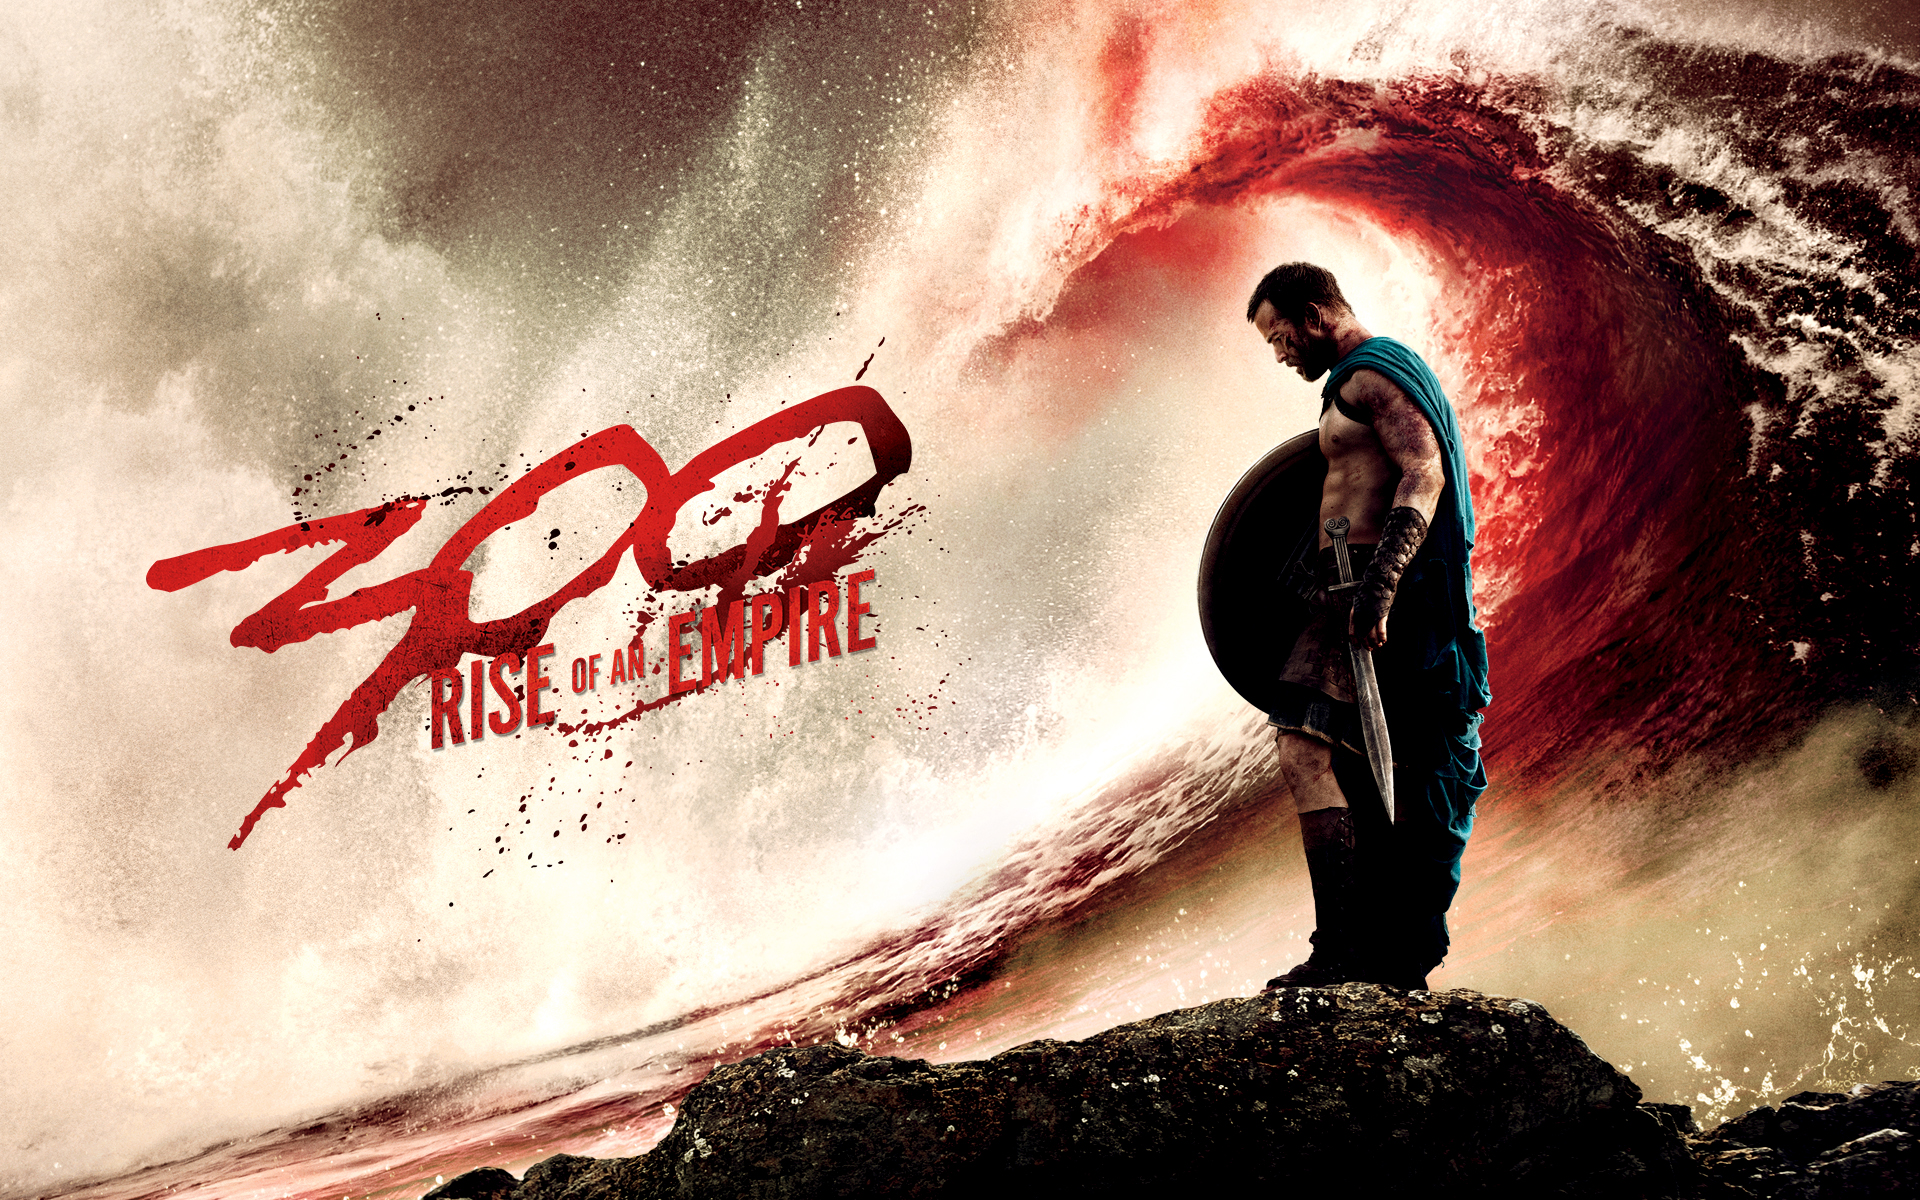 300-rise-of-an-empire